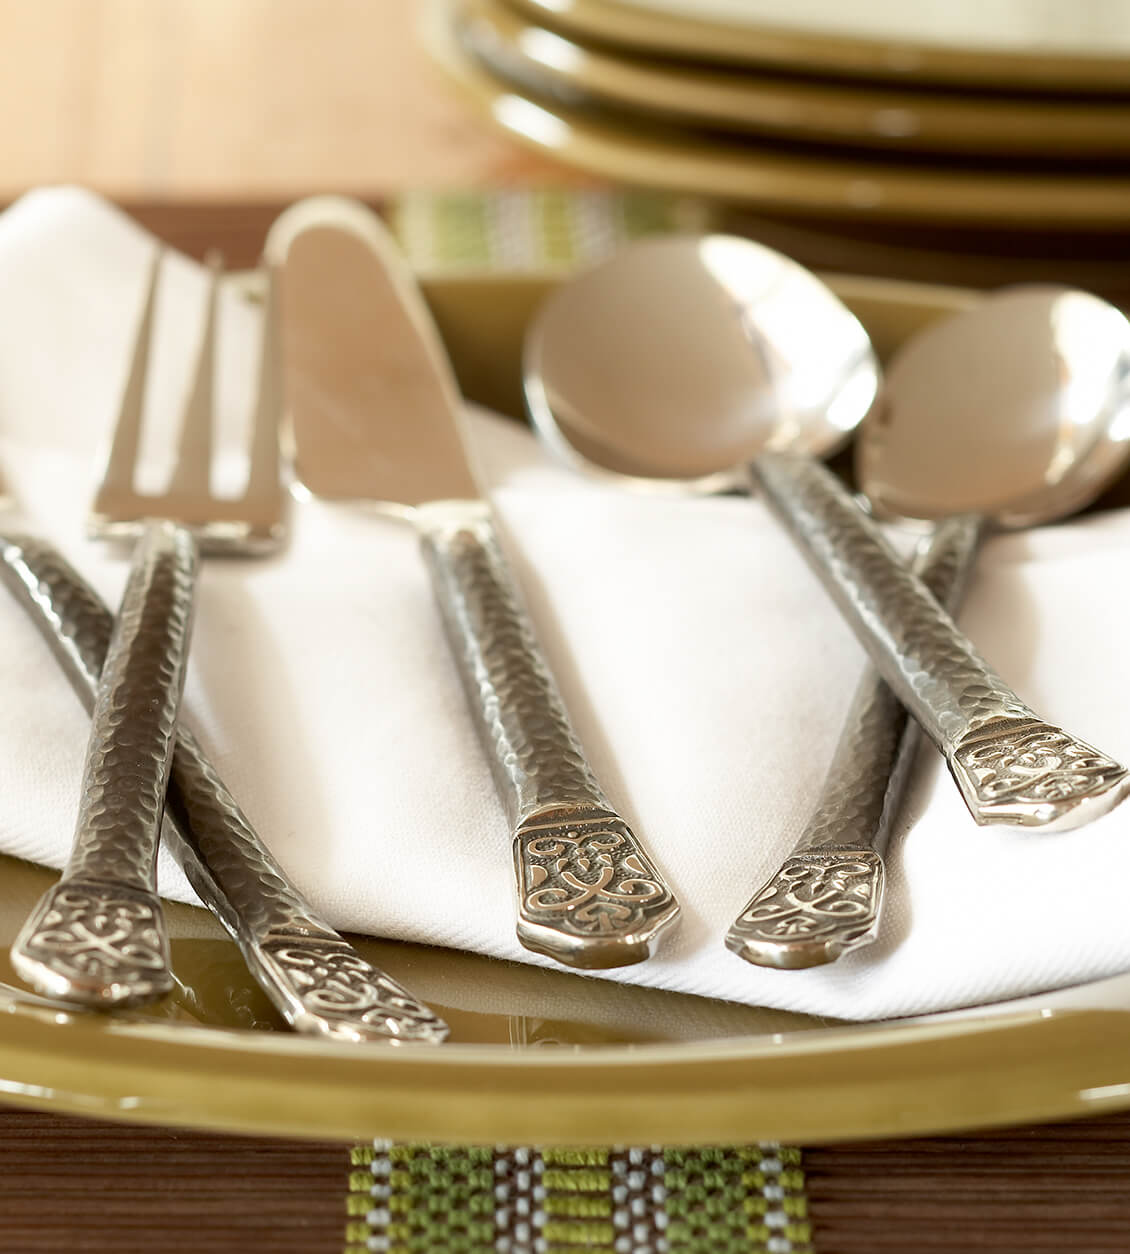 flatware great interior design photography